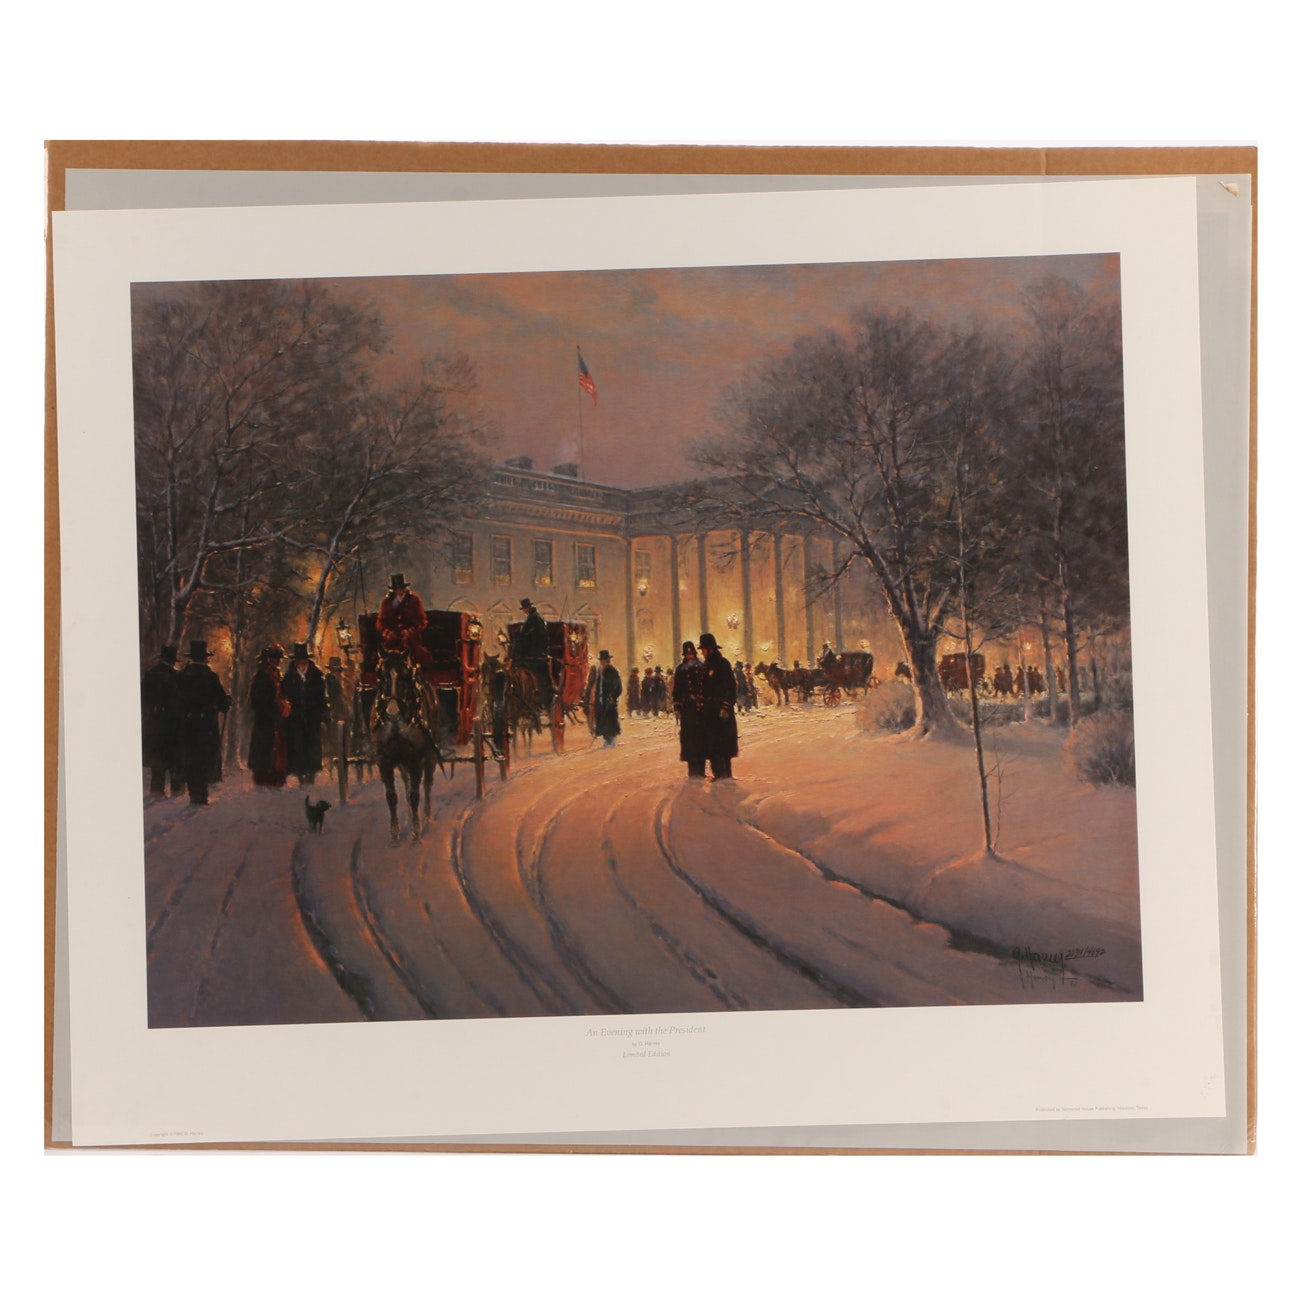 "G. Harvey Signed 1990 Limited Edition Offset Lithograph ""An Evening with the..."""